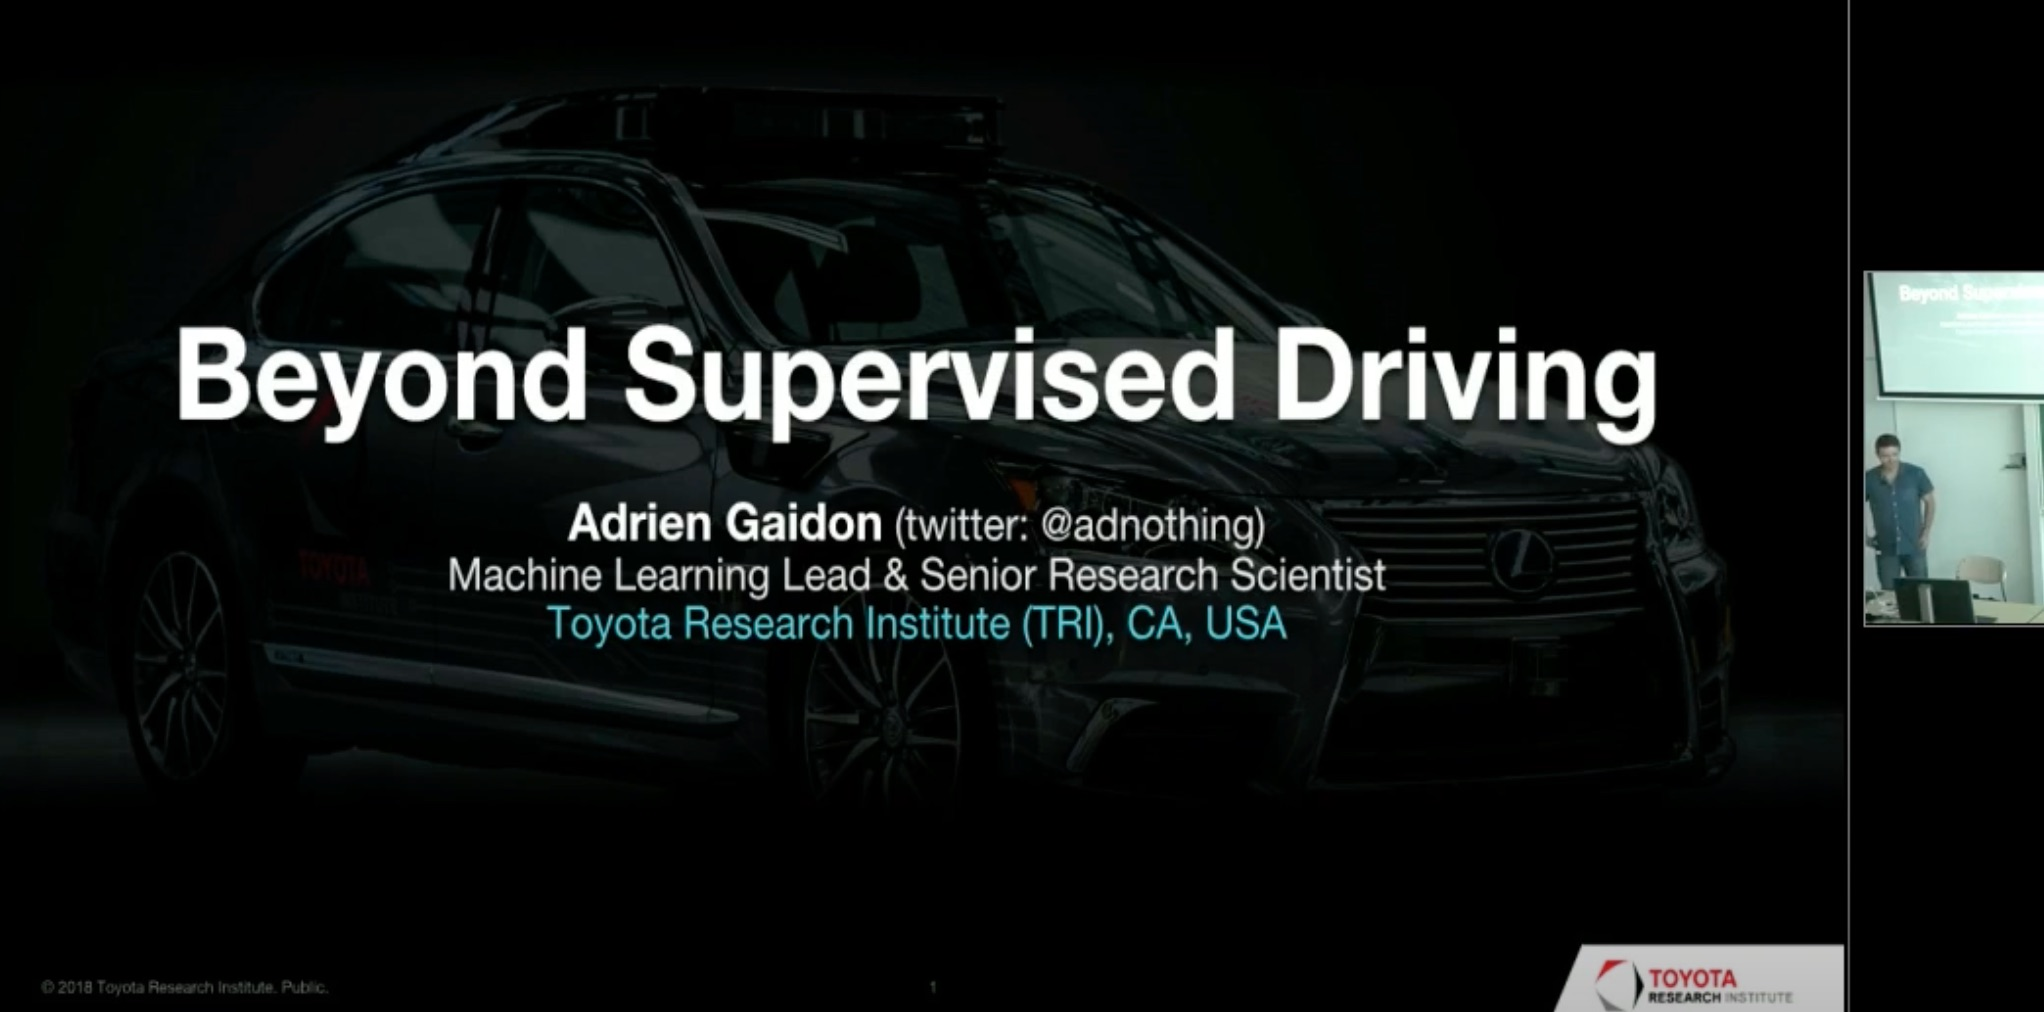 Beyond Supervised Driving talk at QUVA, the joint lab between Qualcomm and the University of Amsterdam